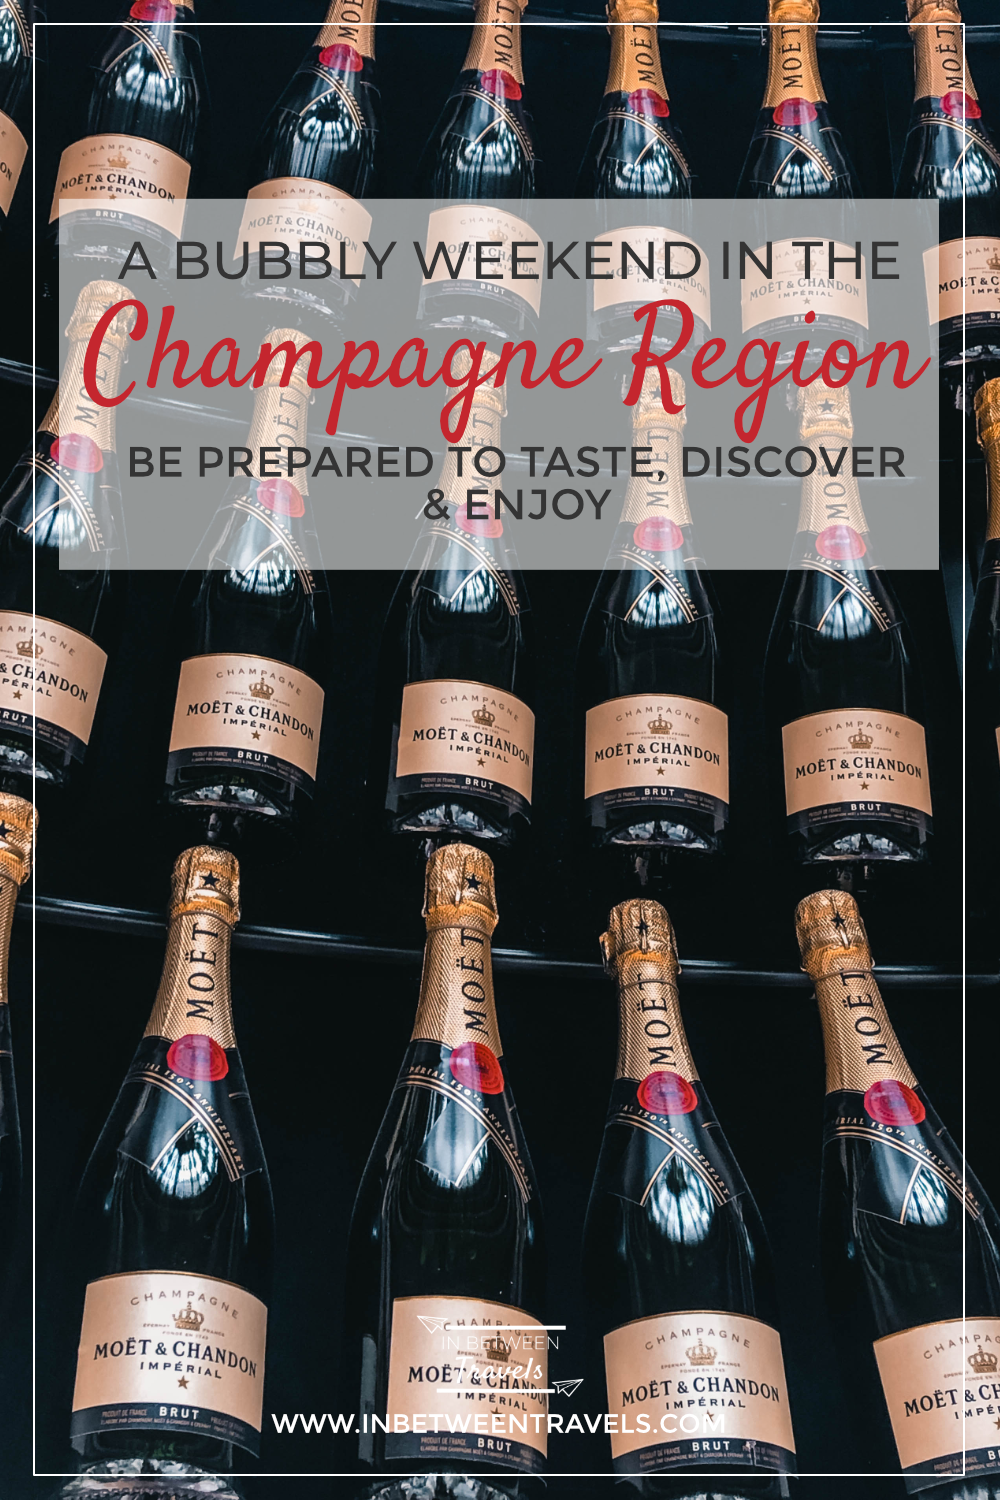 A bubbly weekend in the Champagne Region